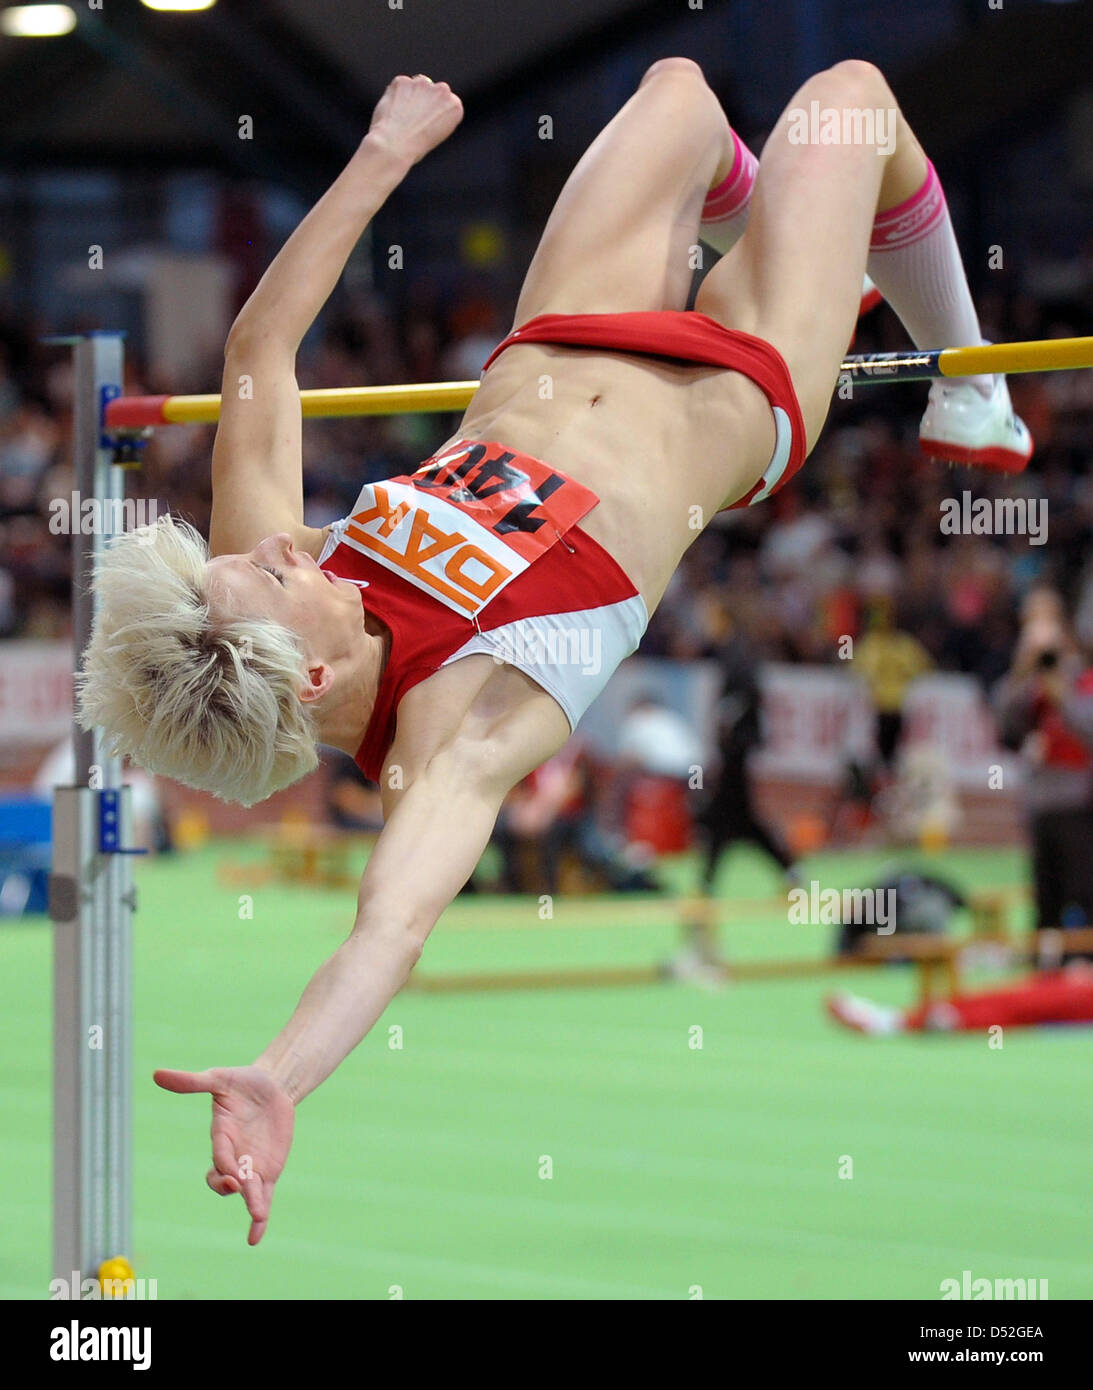 Ariane Friedrich shown in action during the women's high jump event at the German Indoor Athletics Championships - Stock Image